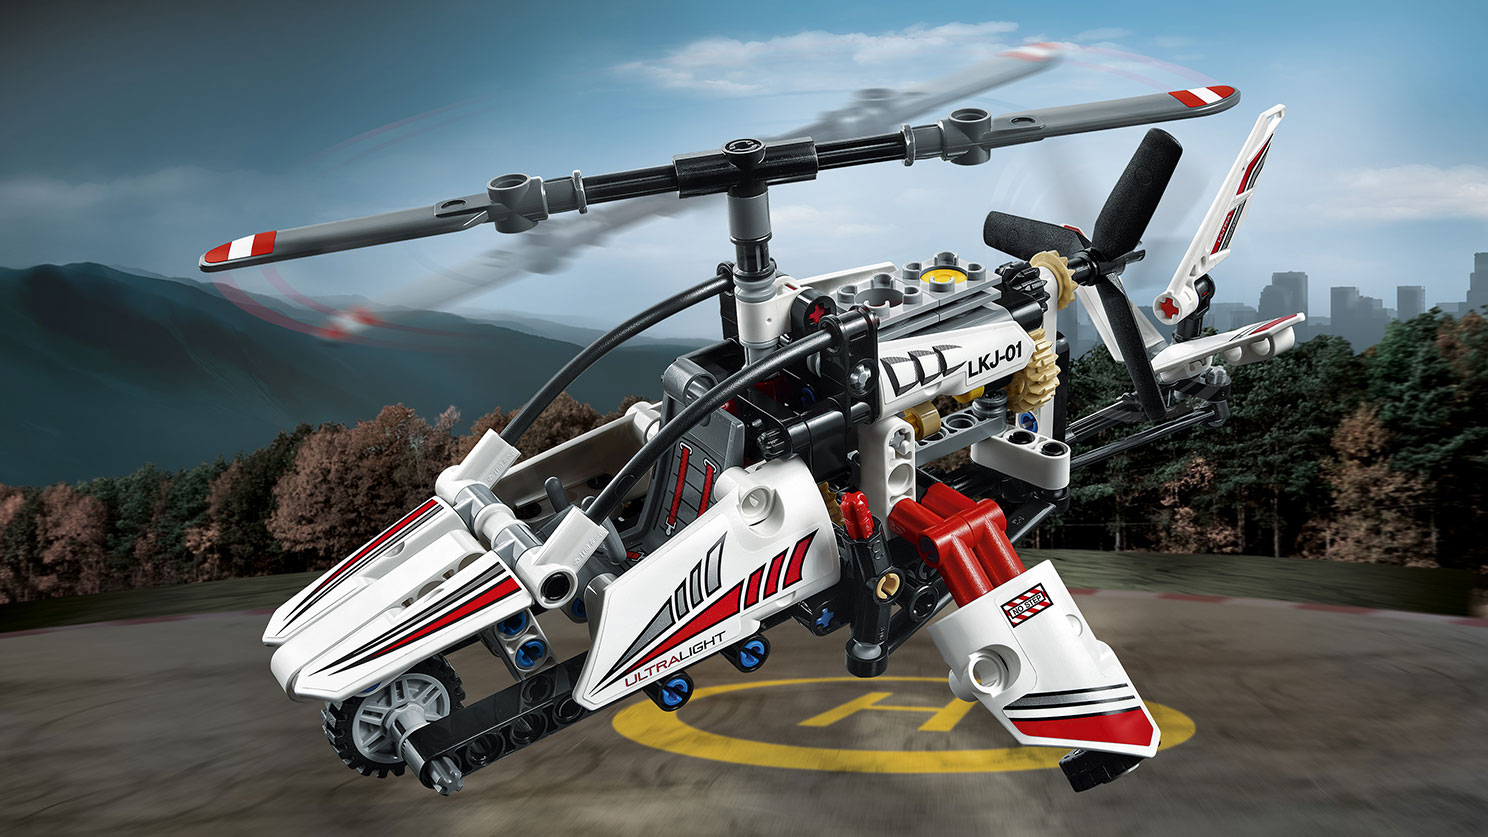 LEGO Technic - 42057 Ultralight Helicopter - Pilot this high-tech helicopter in white, blue and red colors! It has a tail rudder, main rotor, tail rotor and a detailed engine.